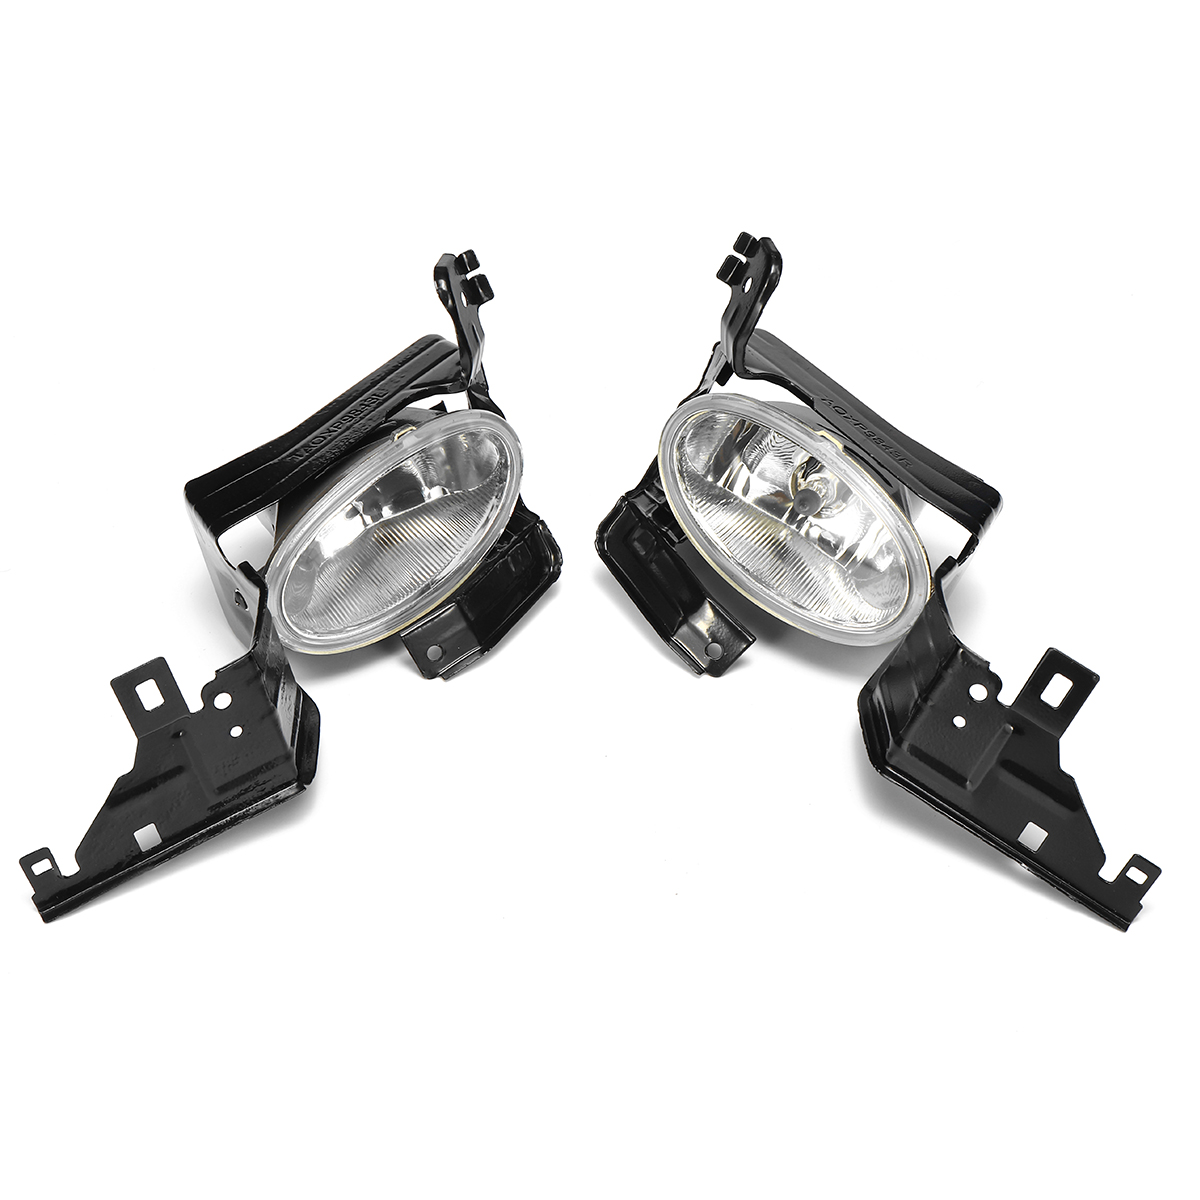 2Pcs Halogen Car Fog Lights Front Driving Bumper Lamp for Honda Accord 4DR EX SE LX 2011-2012